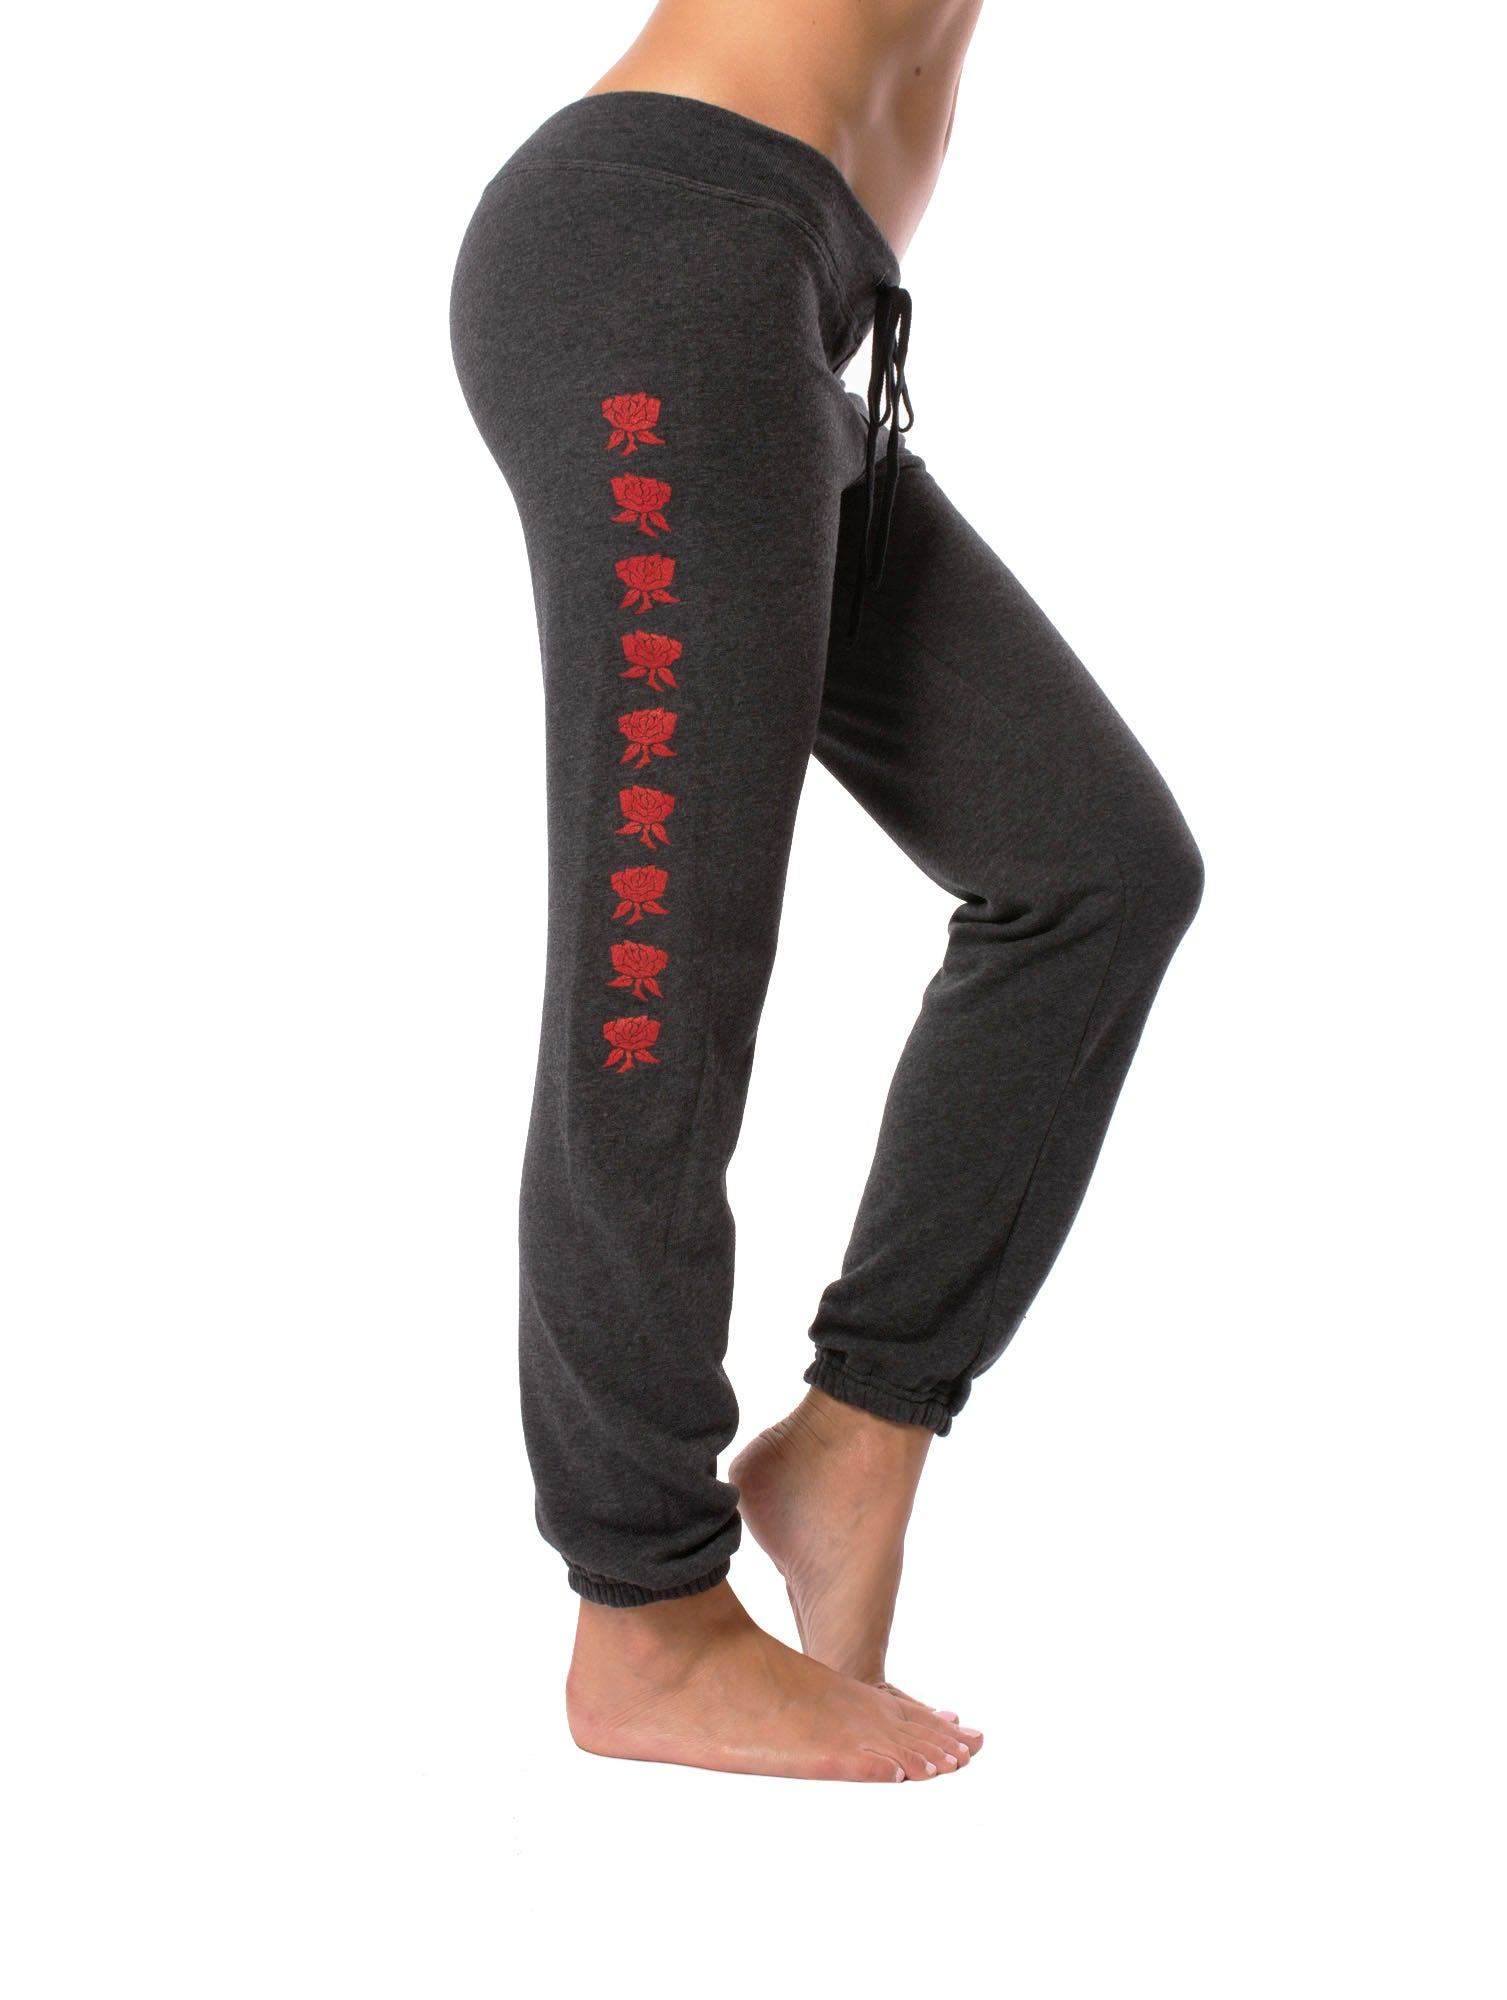 Fleece Pull On Ankle Pants w/Stars (Style RICH-07, Black w/Red Stars) by Hard Tail Forever